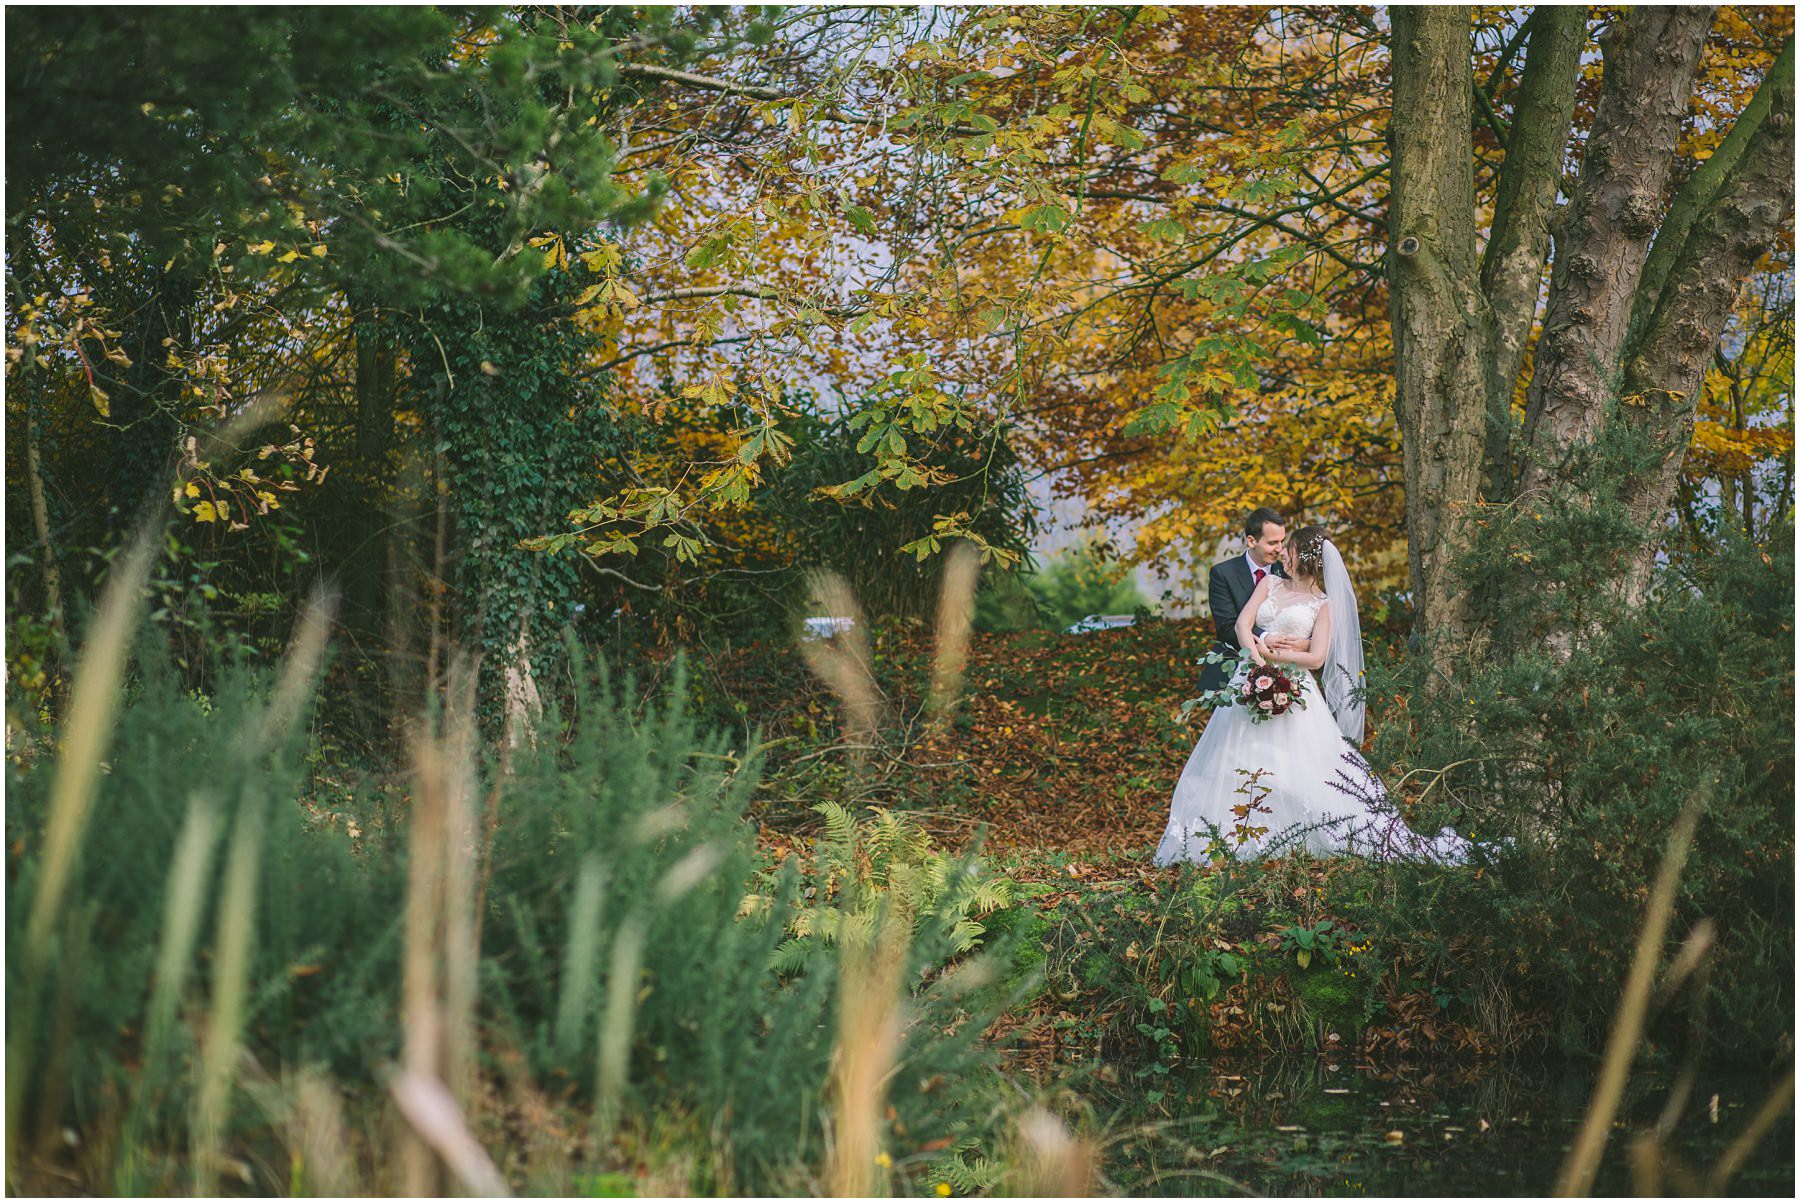 Wedding portraits at The Oak Tree Of Peover